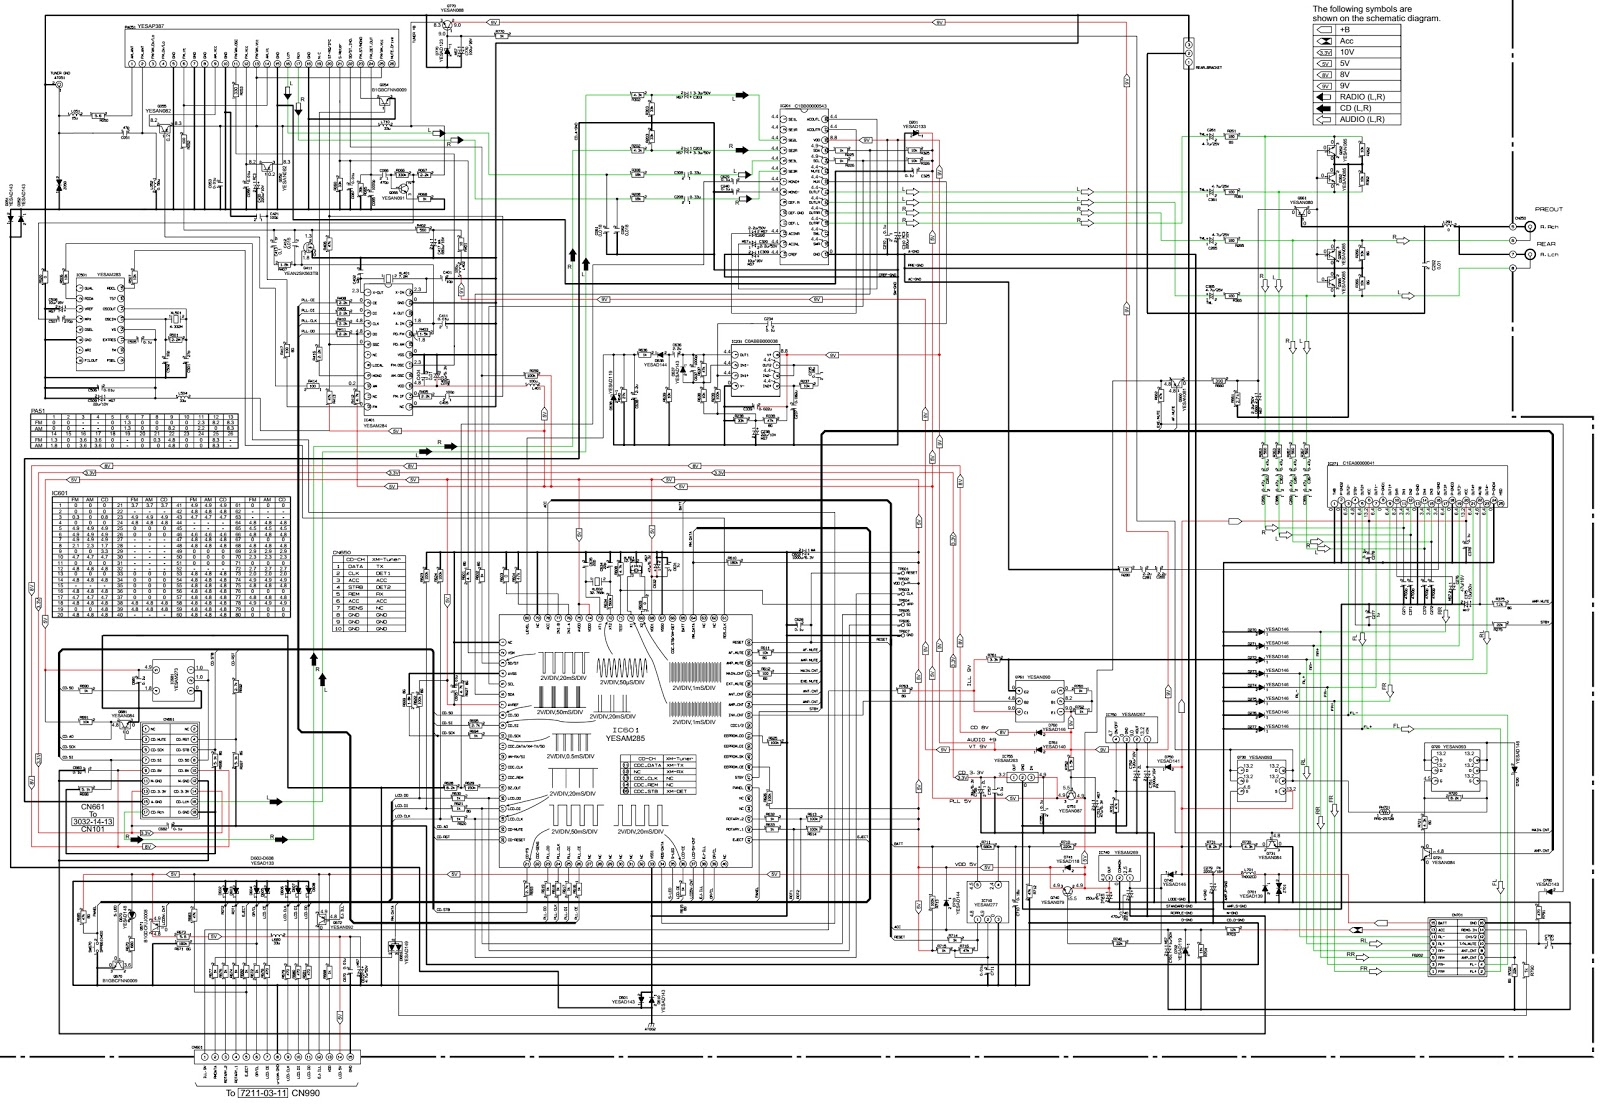 panasonic cq-c3302n circuit diagram  u2013 exploded view  receiver